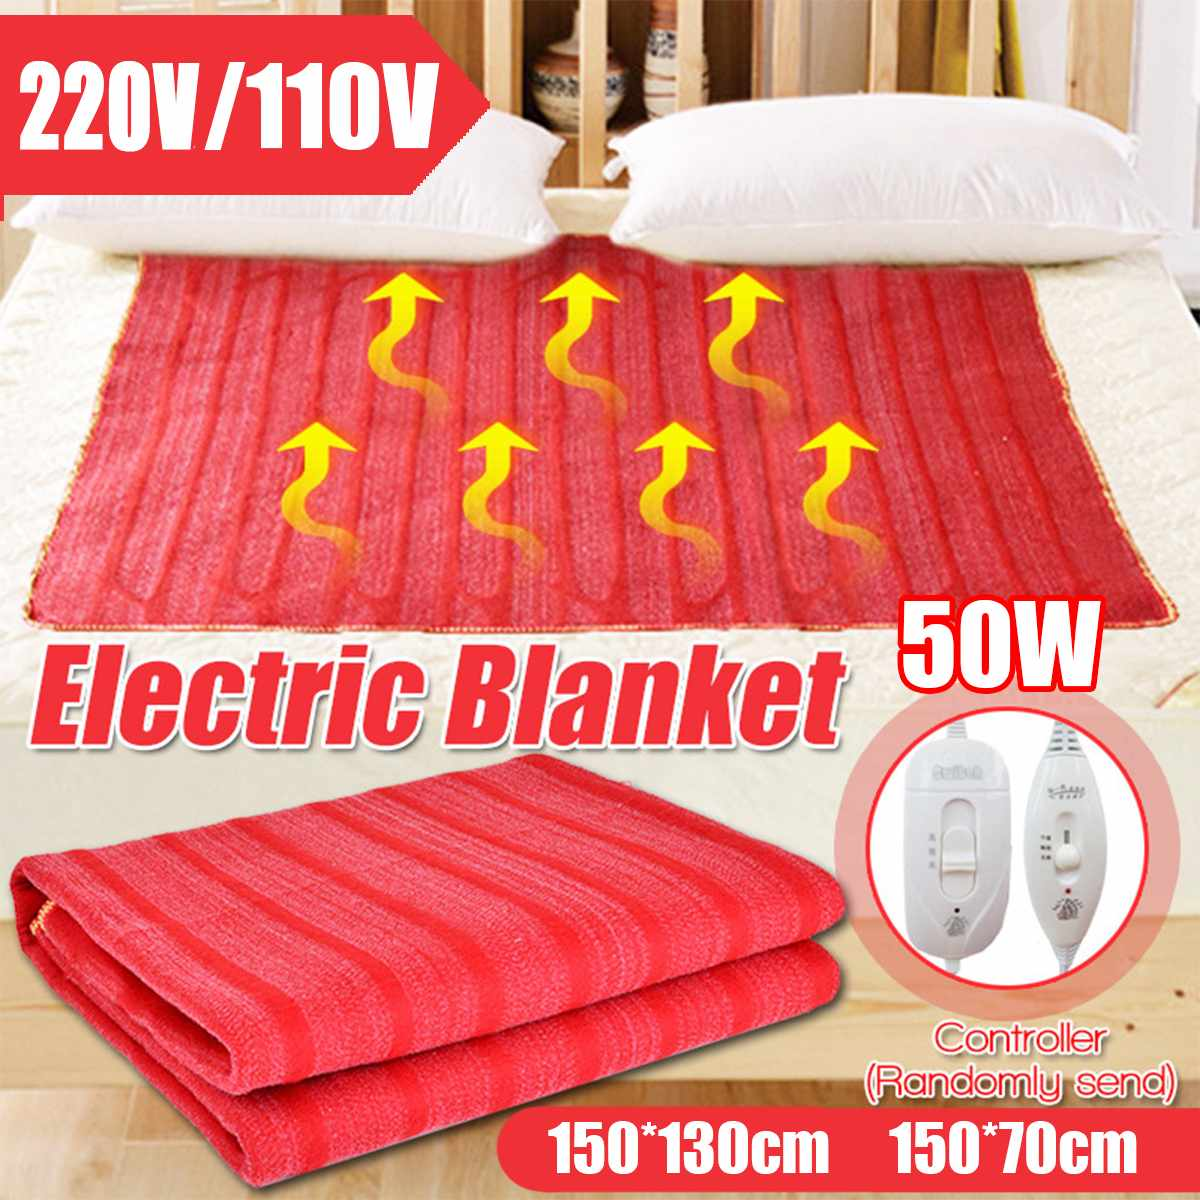 110V/220V Washable Electric Blanket Double Single Waterproof Temperature Adjustable Warm Heaters Bed USB Heating Pad Heated Mat